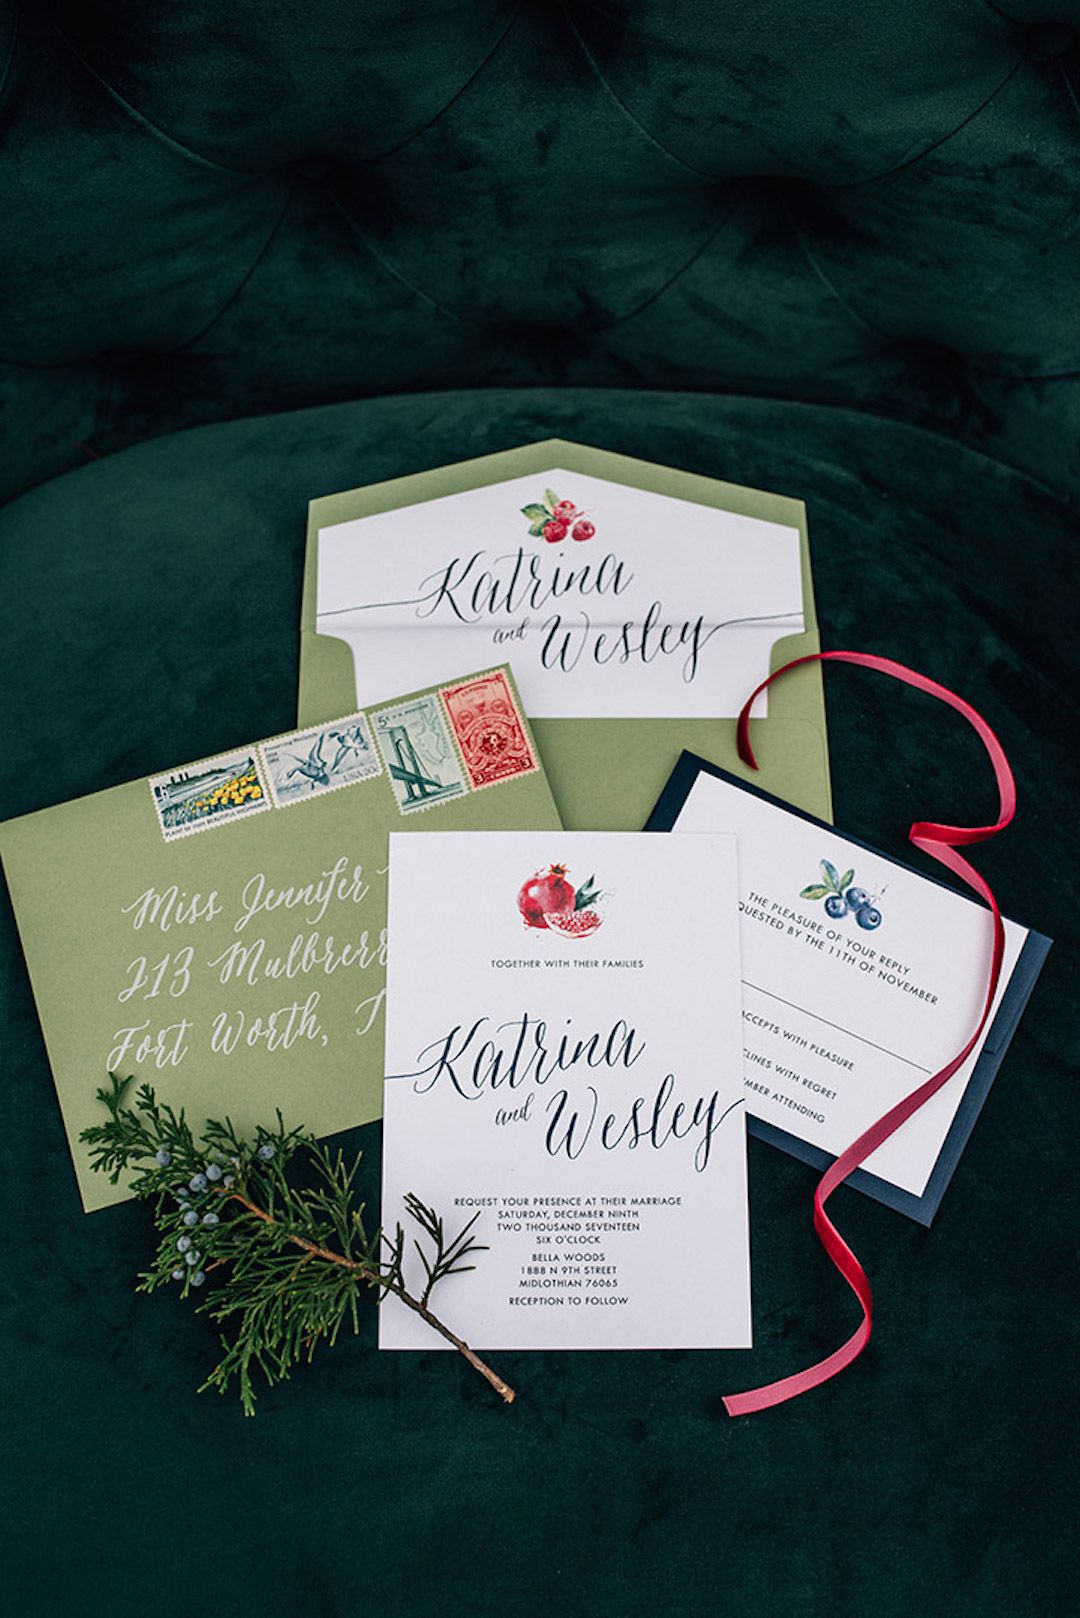 Wedding decorations accessories december 2018 Moody Fruit Themed Wedding Inspiration  WeddingLovely Blog in